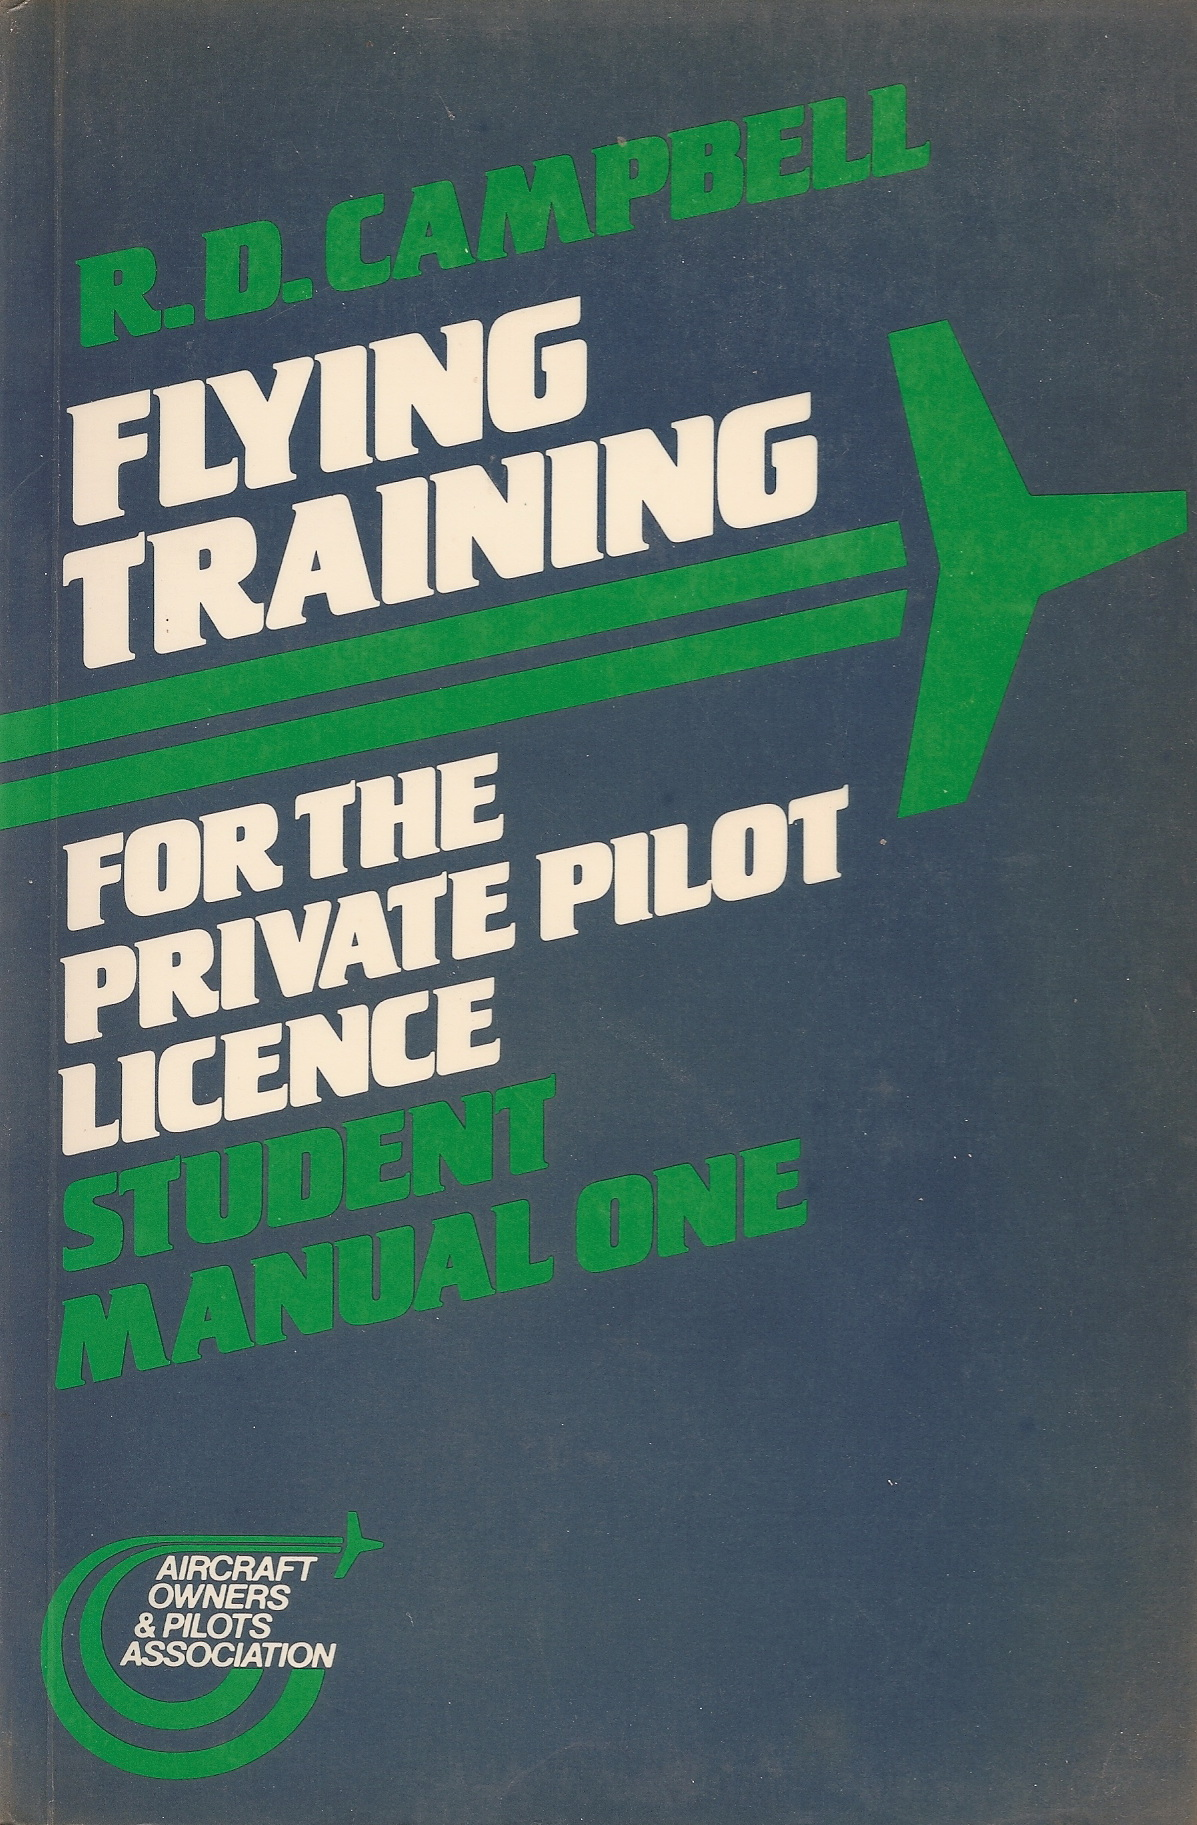 Flying training for the private pilot licence